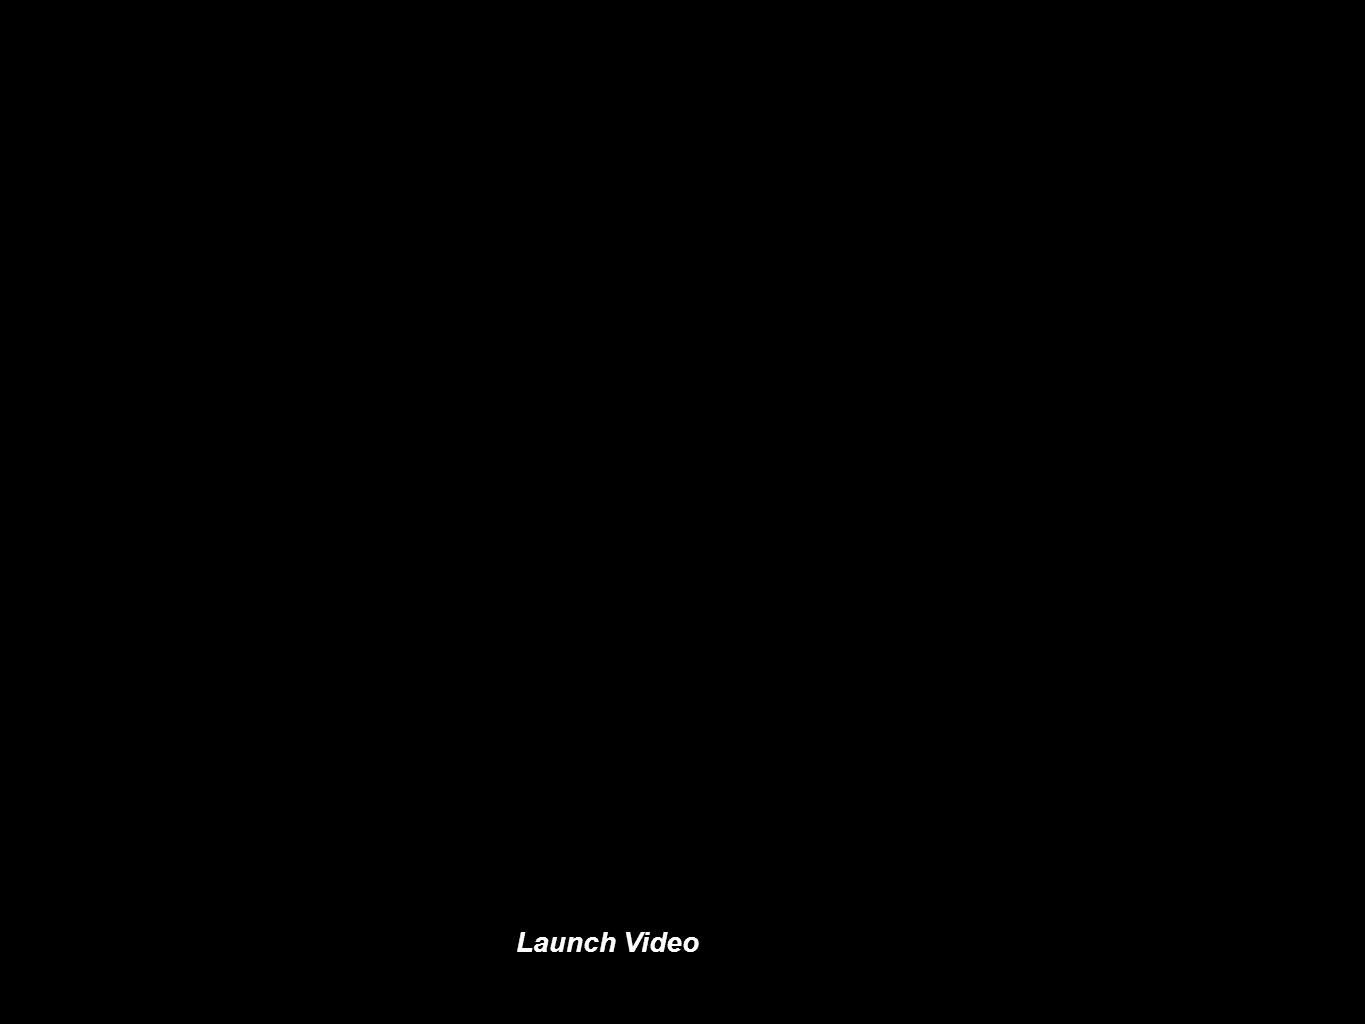 Launch Video